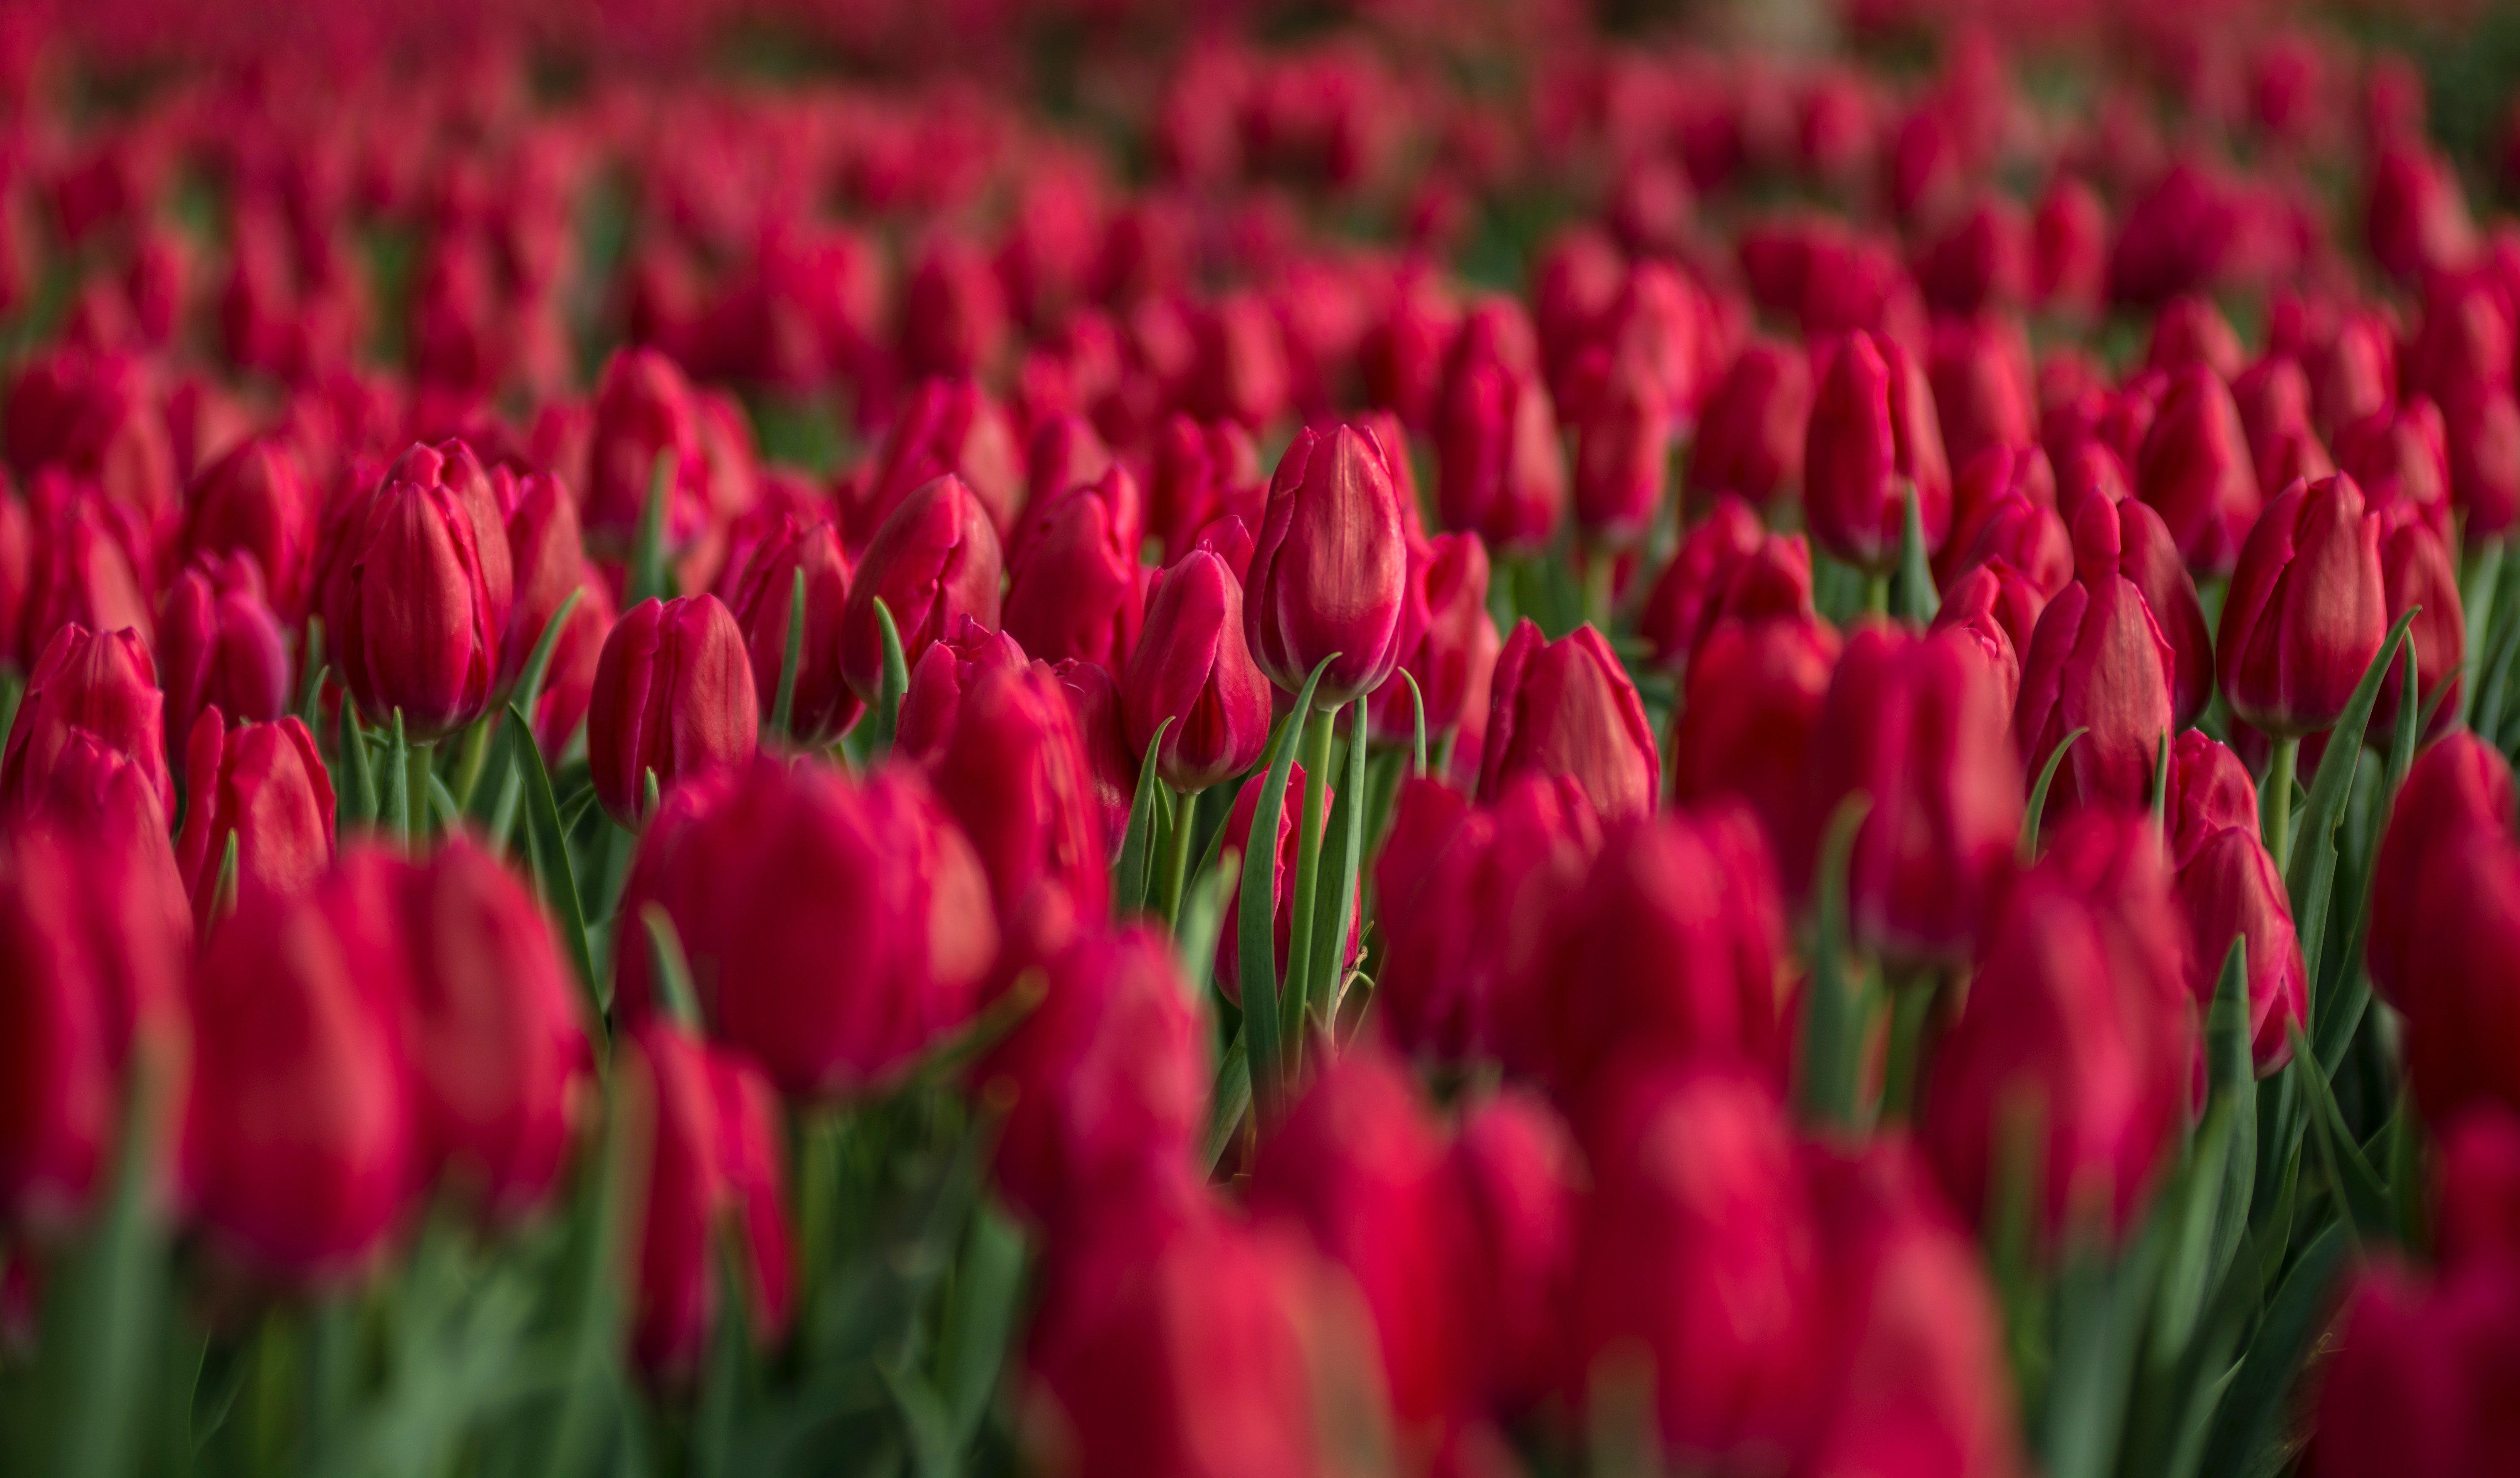 Free photo: Red Tulip Flower Field Close-up Photo - Outdoors, Nature ...